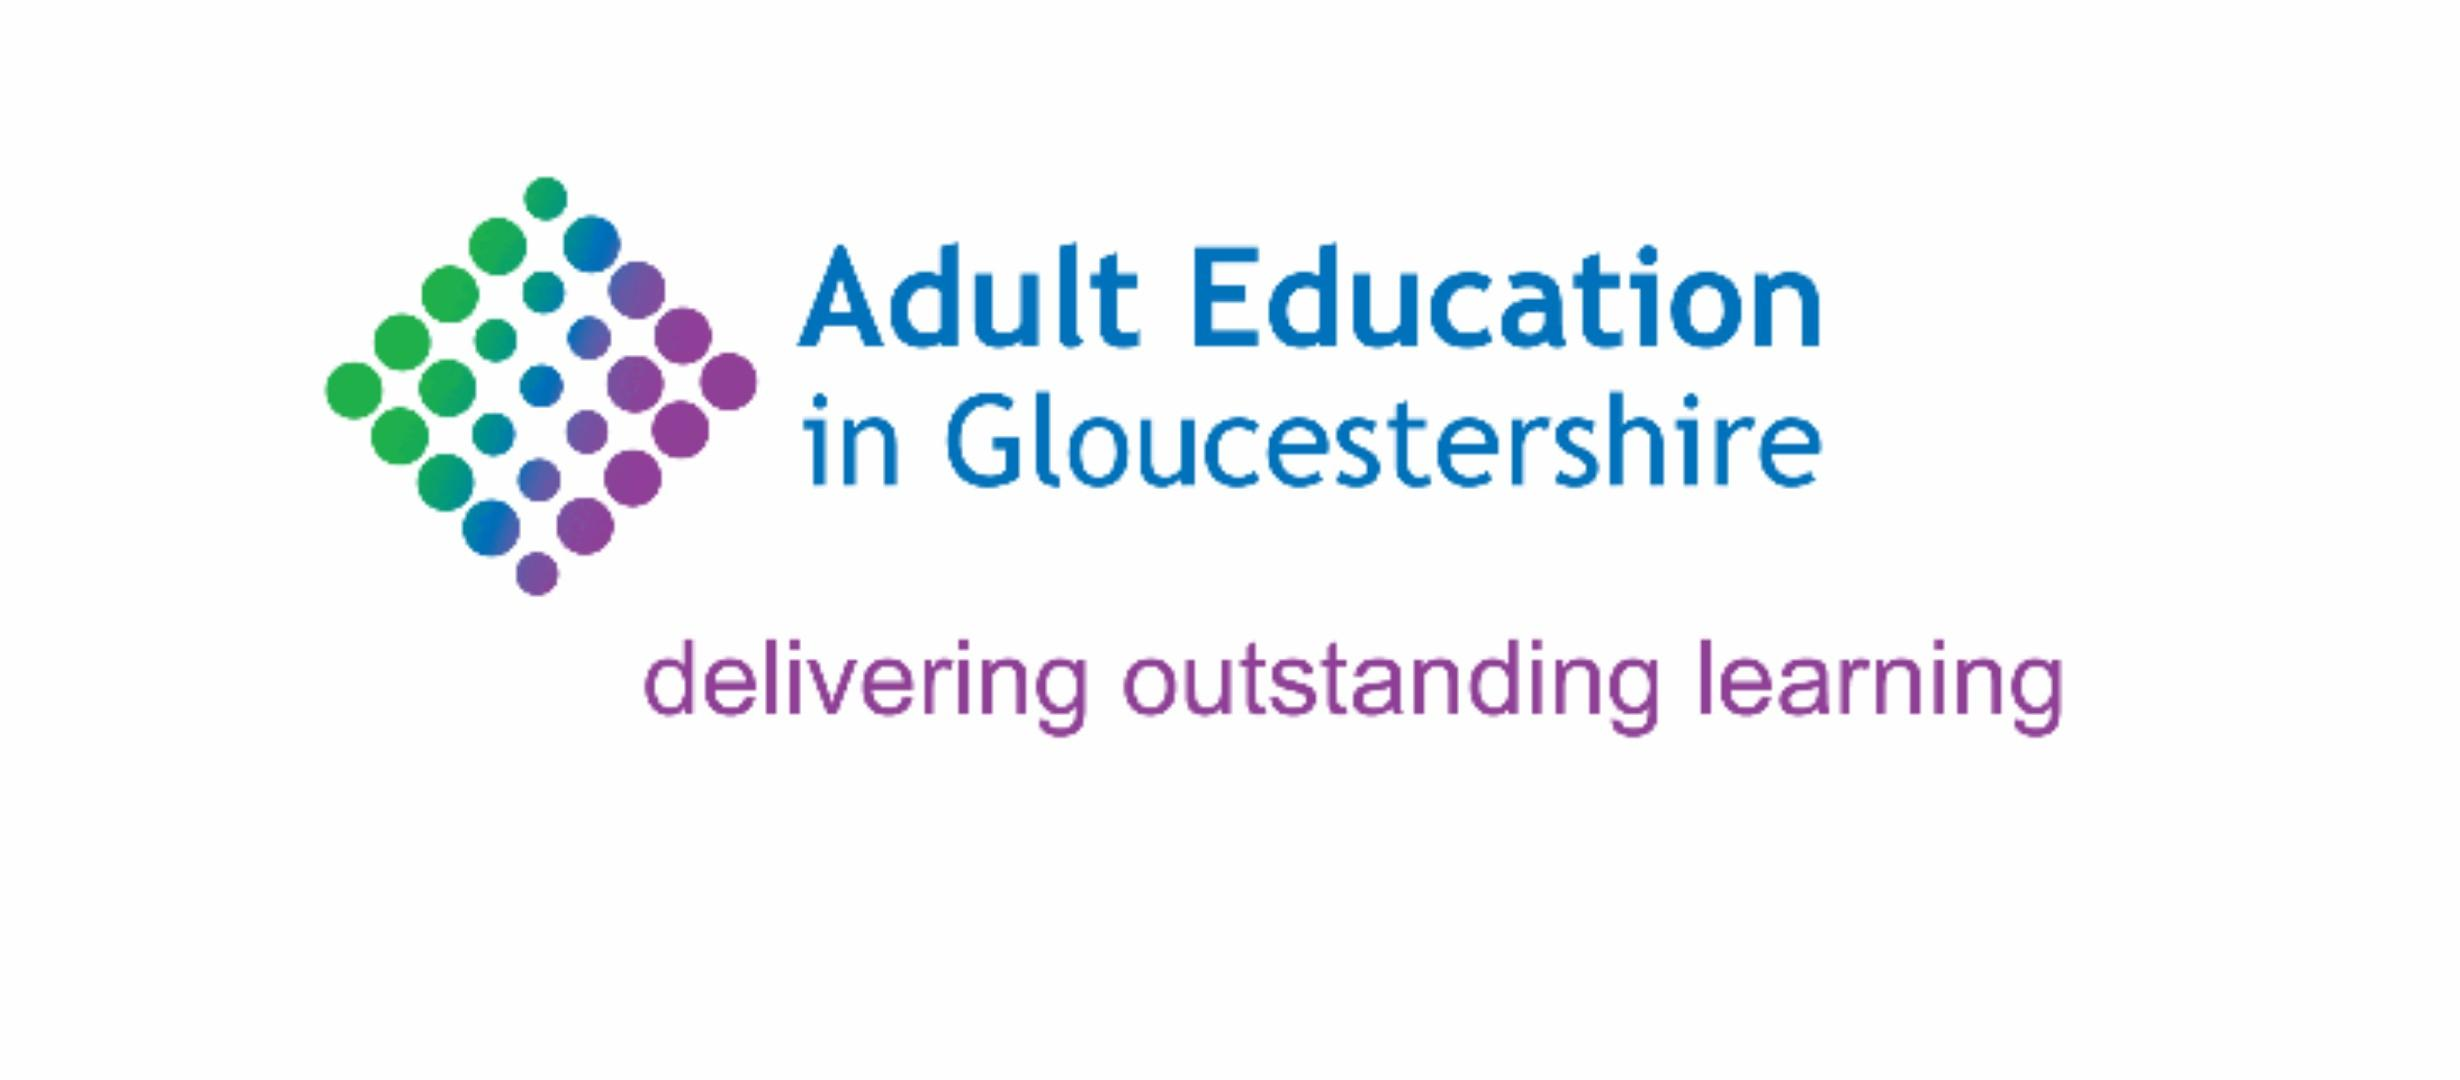 Adult Education in Gloucestershire delivering outstanding learning